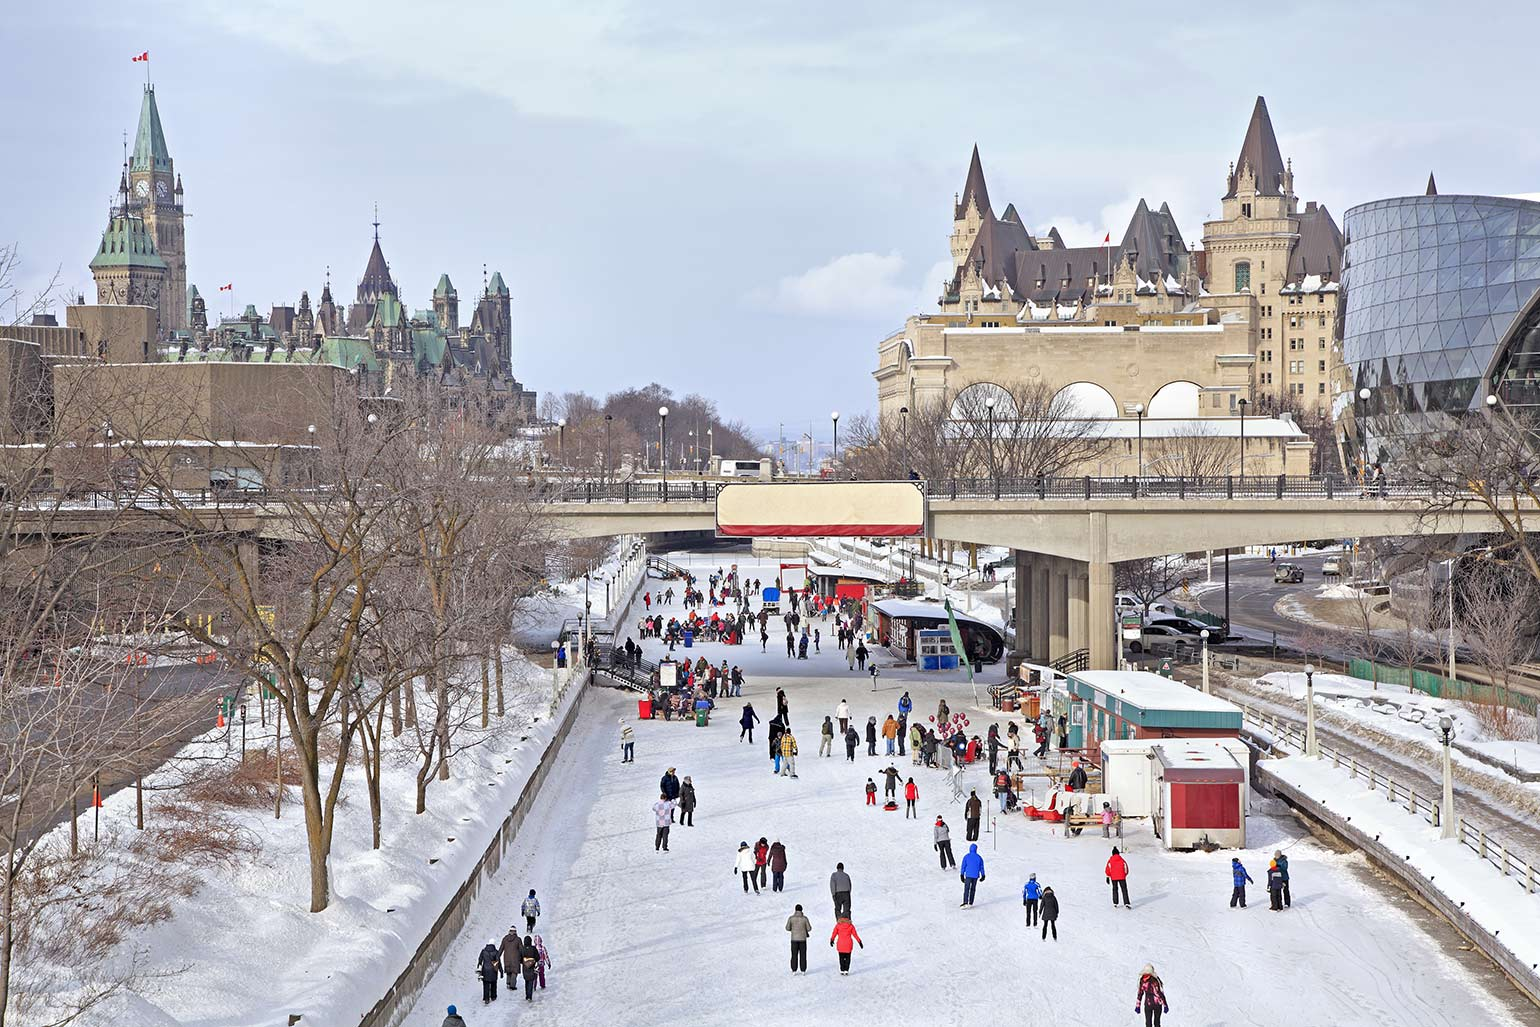 Rideau Canal skating rink during Winterlude with Parliament of Canada overlooking skaters.